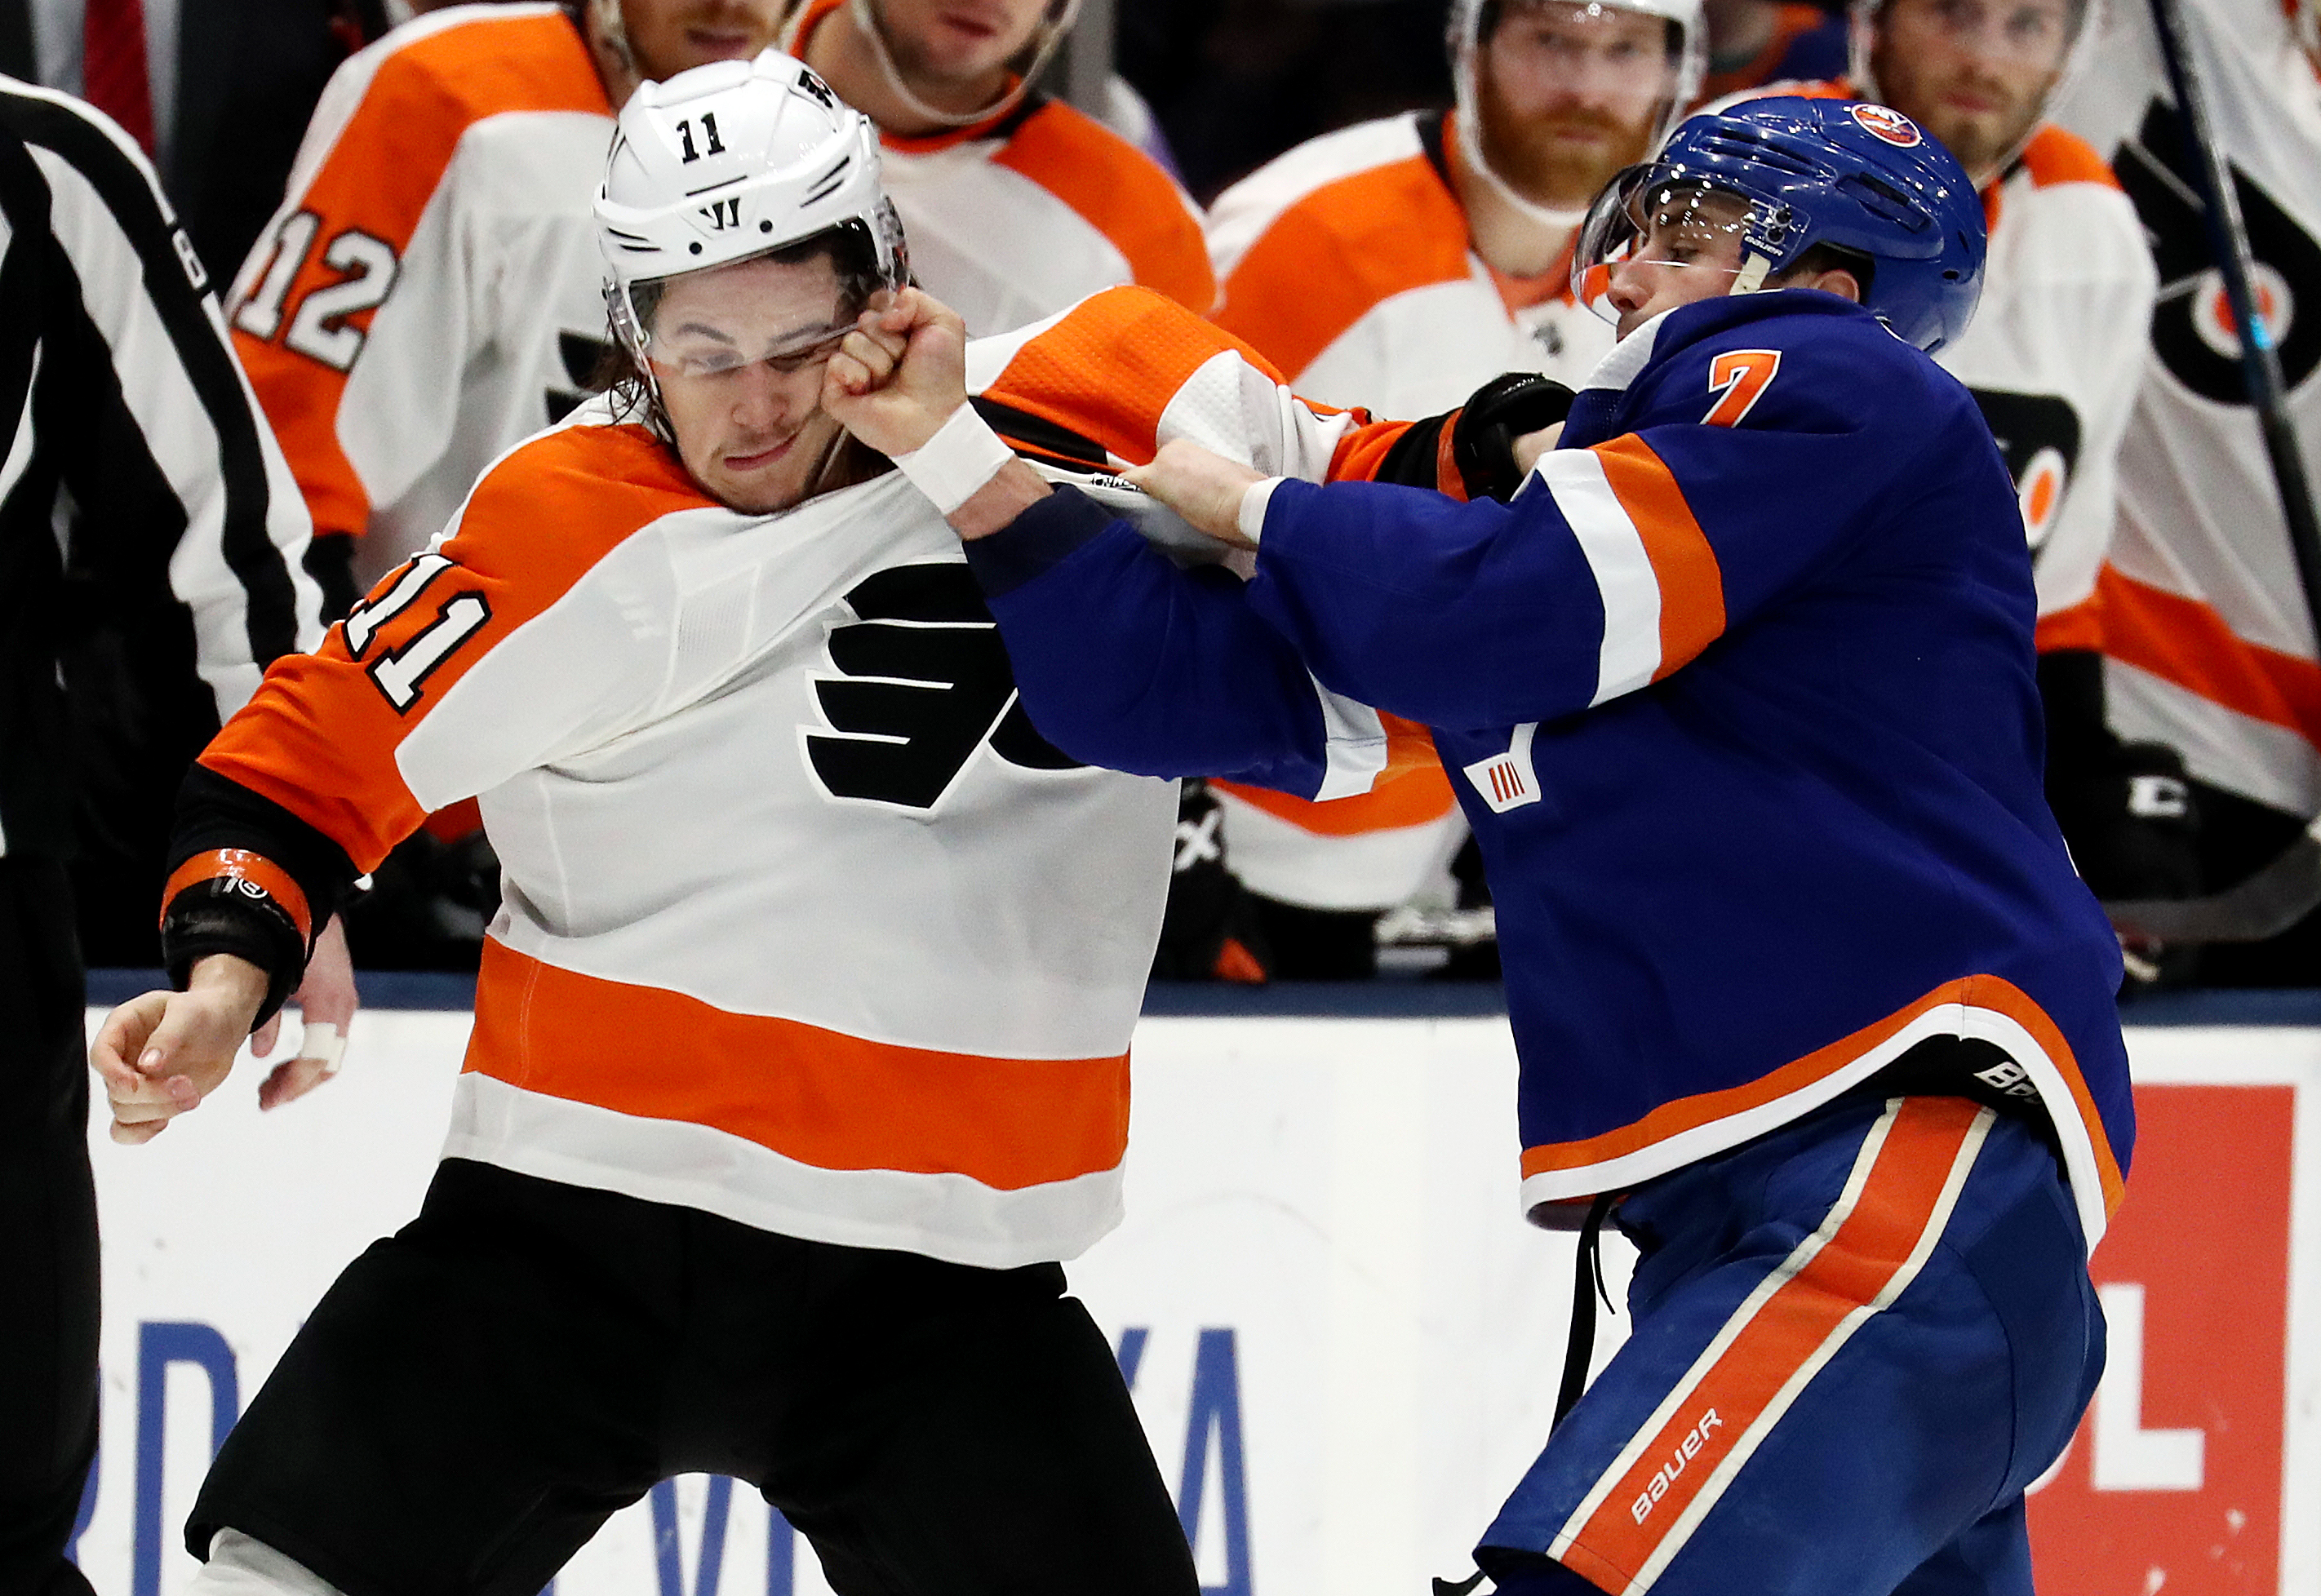 Travis Konecny #11 of the Philadelphia Flyers fights with Jordan Eberle #7 of the New York Islanders during their game at NYCB Live's Nassau Coliseum on March 03, 2019 in Uniondale, New York.